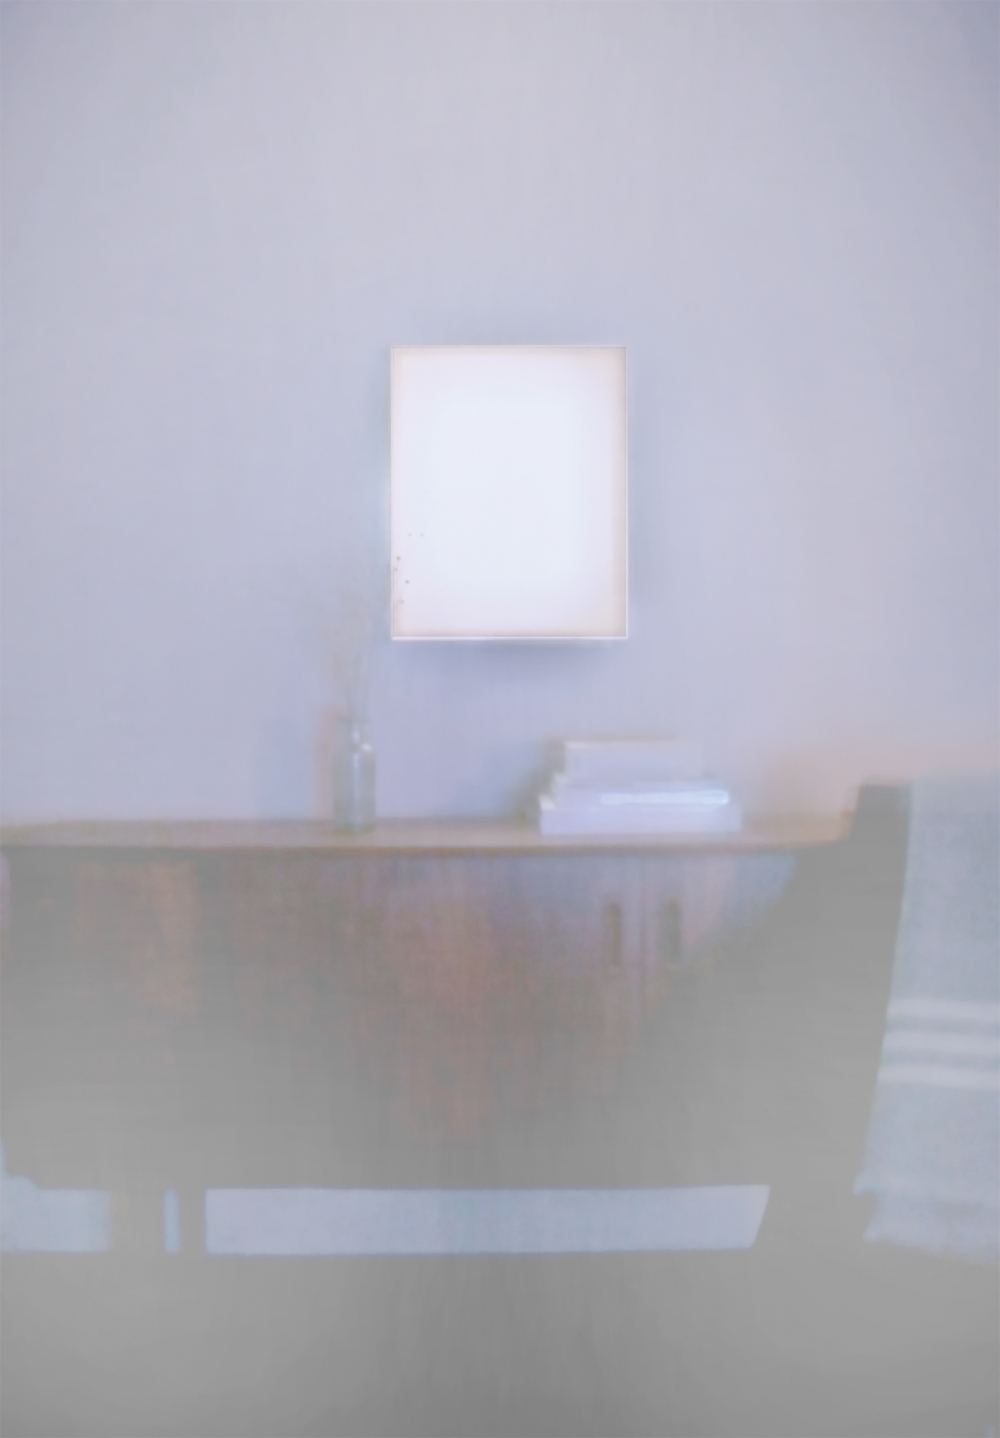 03_Rothko_light_web.jpg